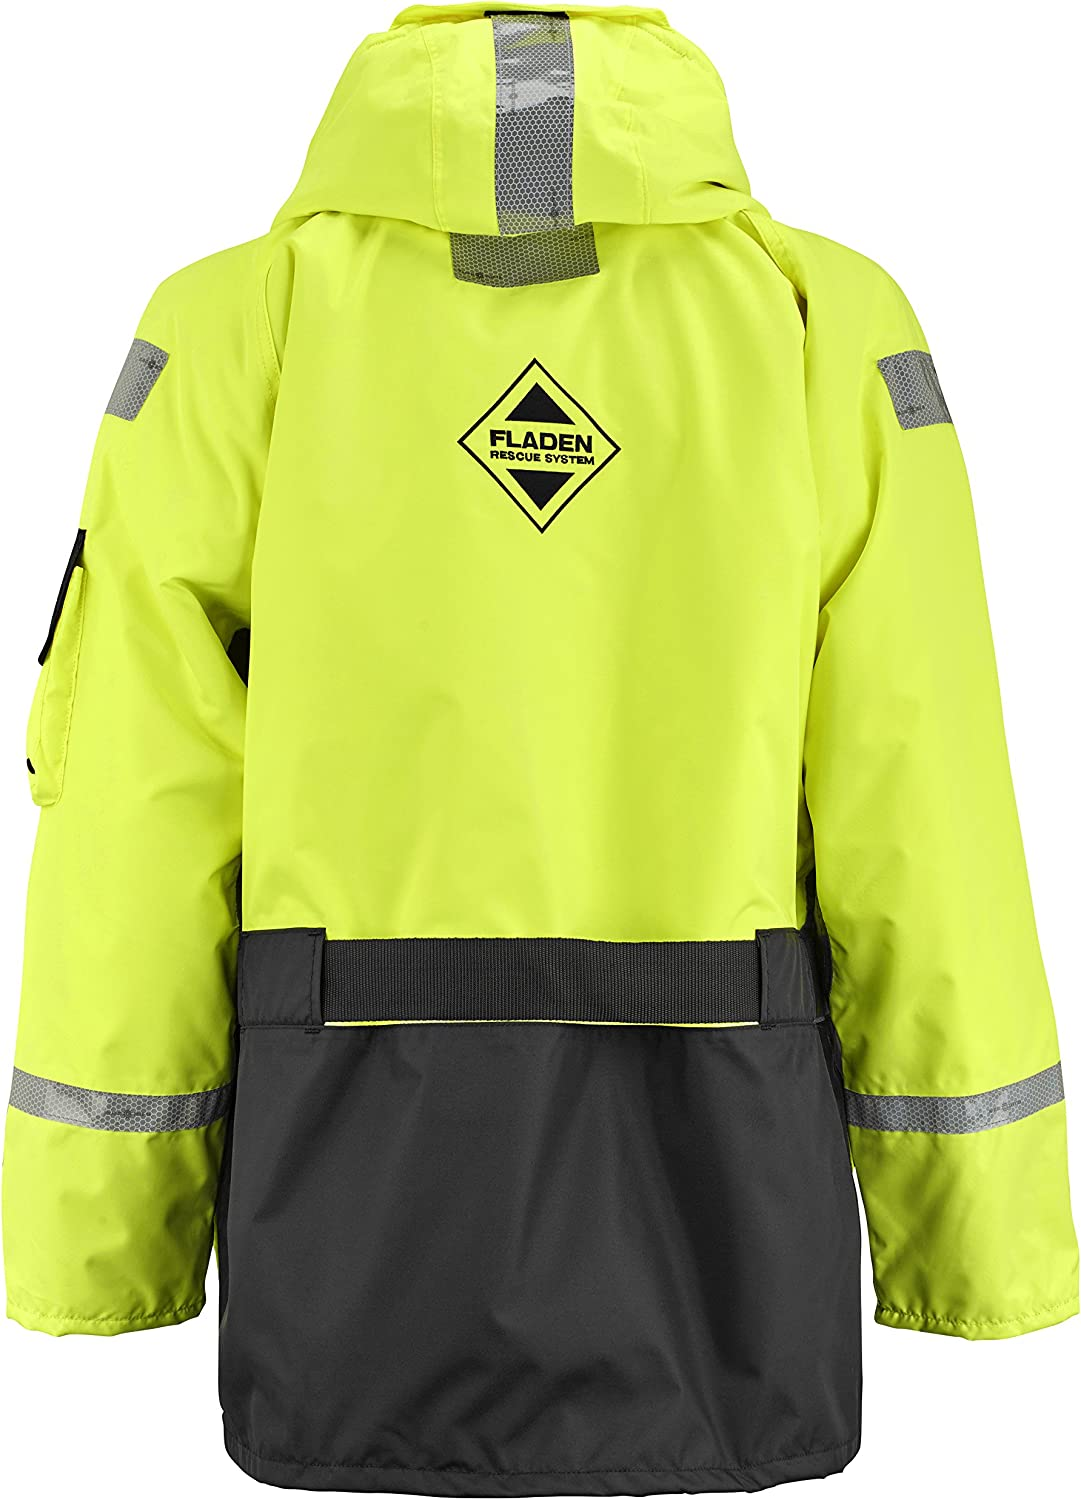 FLADEN RESCUE SYSTEM EN 393 Certified 22-846XY-L Black and Yellow SCANDIA Flotation Jacket Marine Buoyancy and Thermal Protection Large